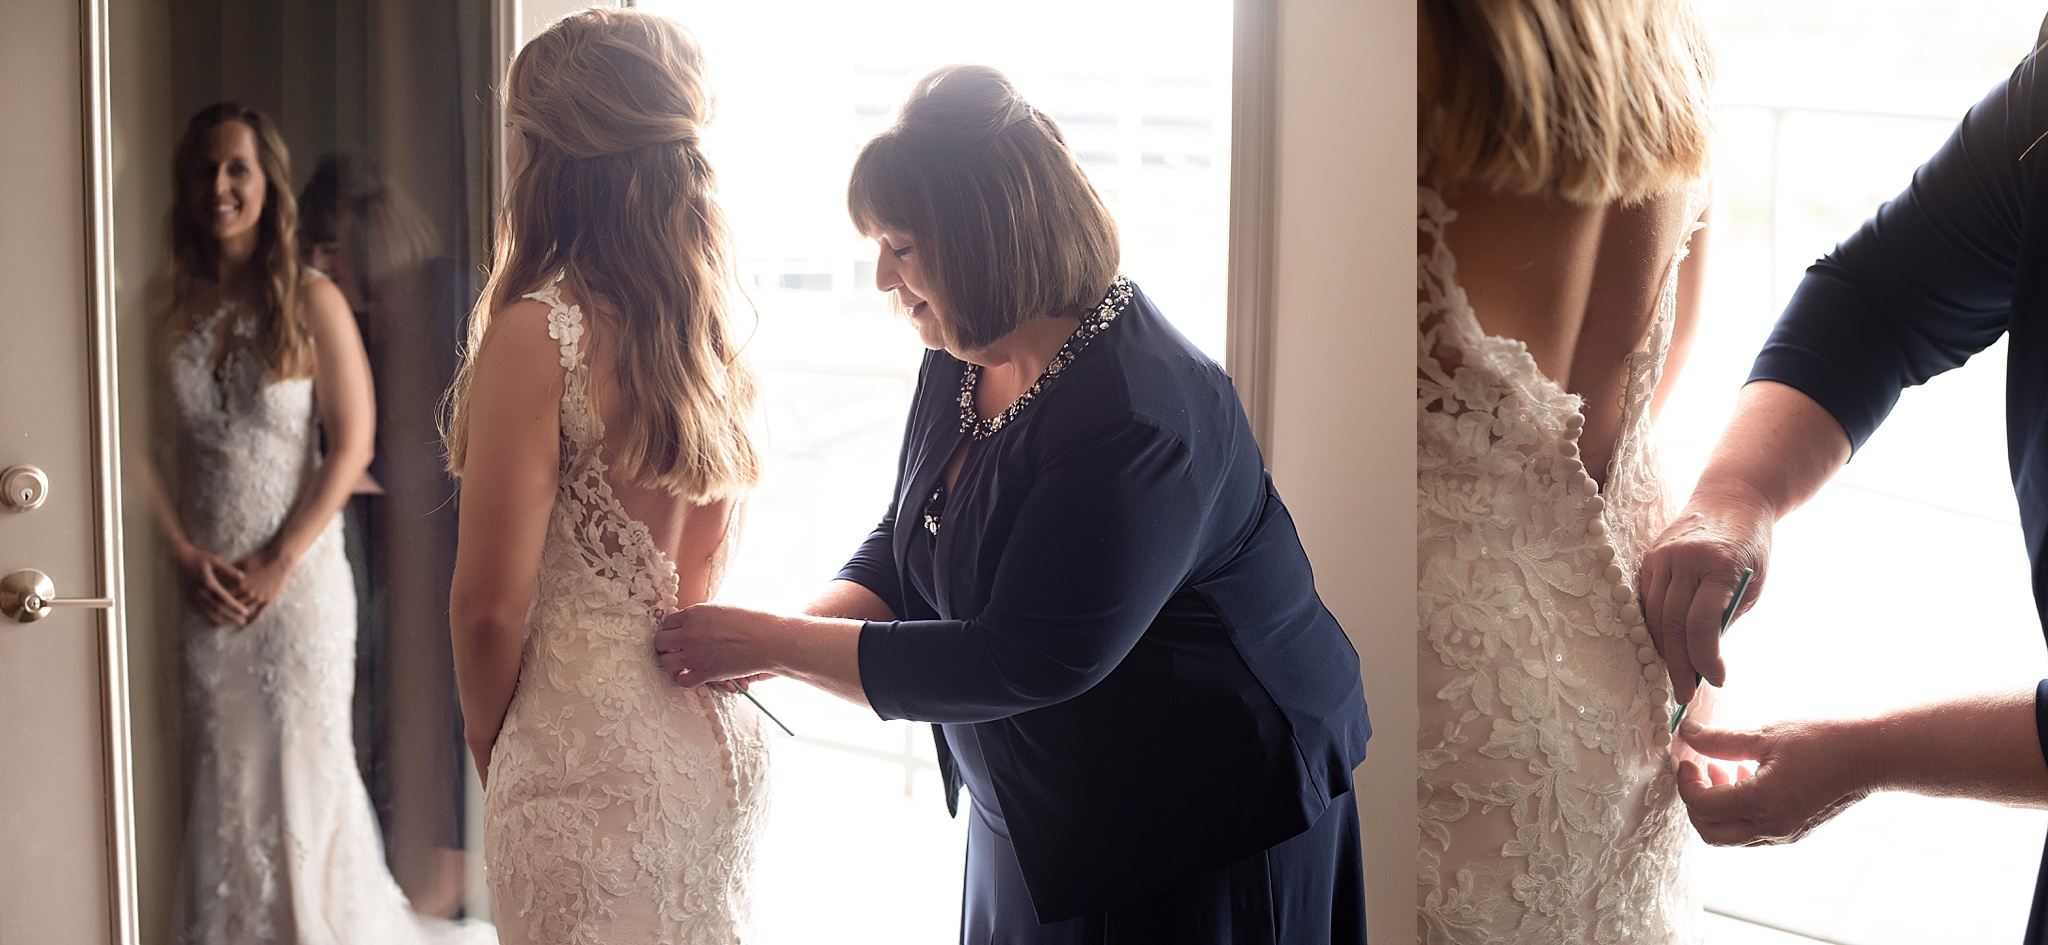 mom helps bride into her wedding dress